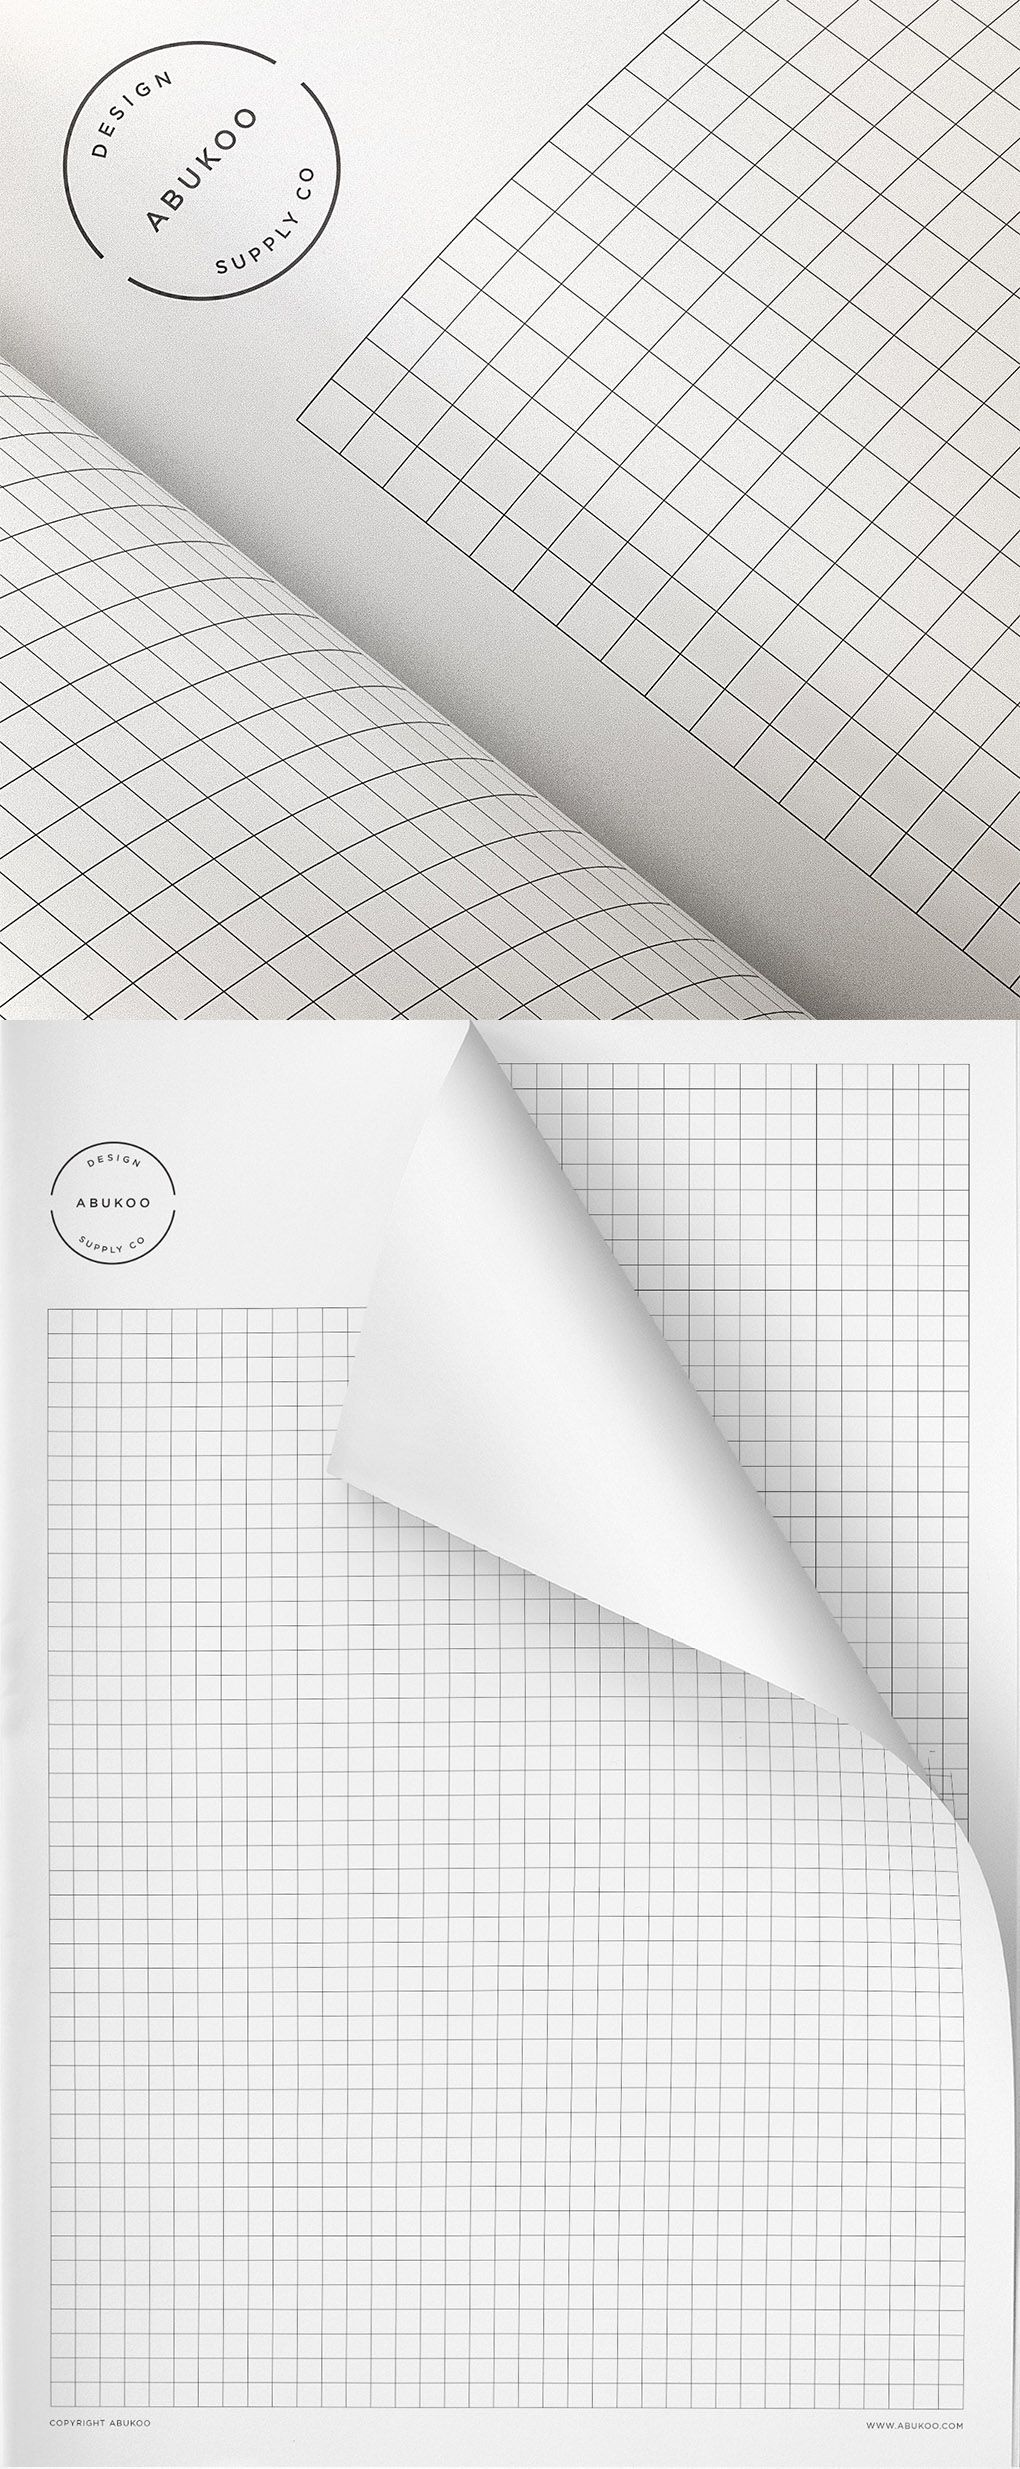 Printable Graph Paper  Graph Paper Graphic Design Inspiration